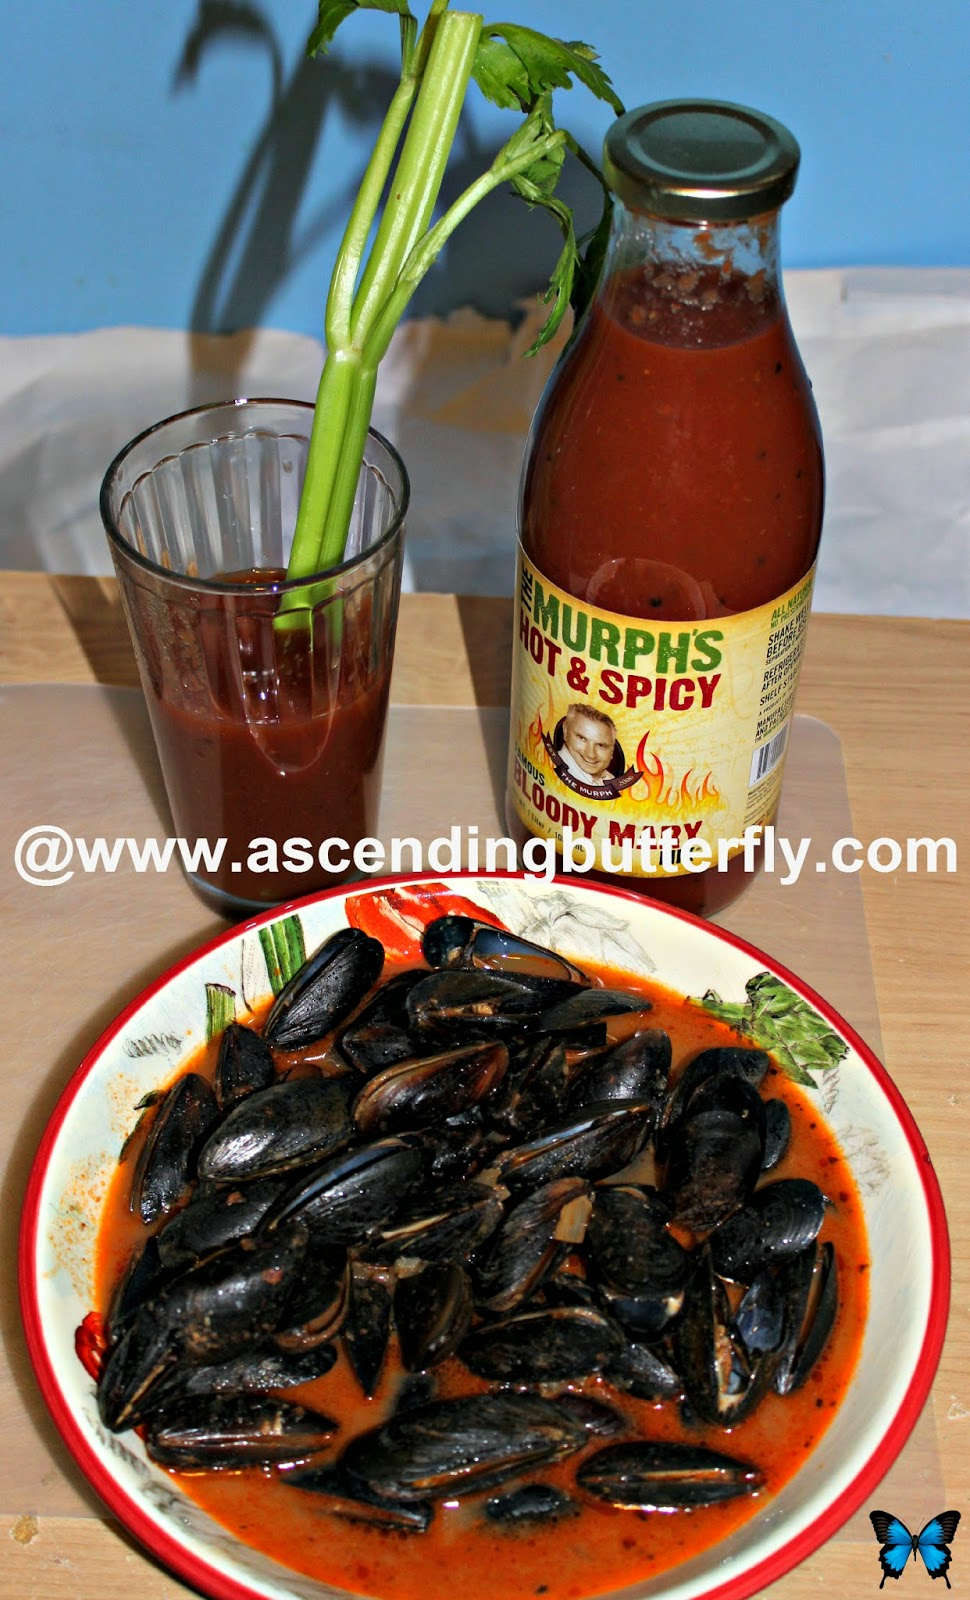 Murph's Famous Hot & Spicy Bloody Mary Mix, Mussels, Seafood, Bloody Mary Cocktail